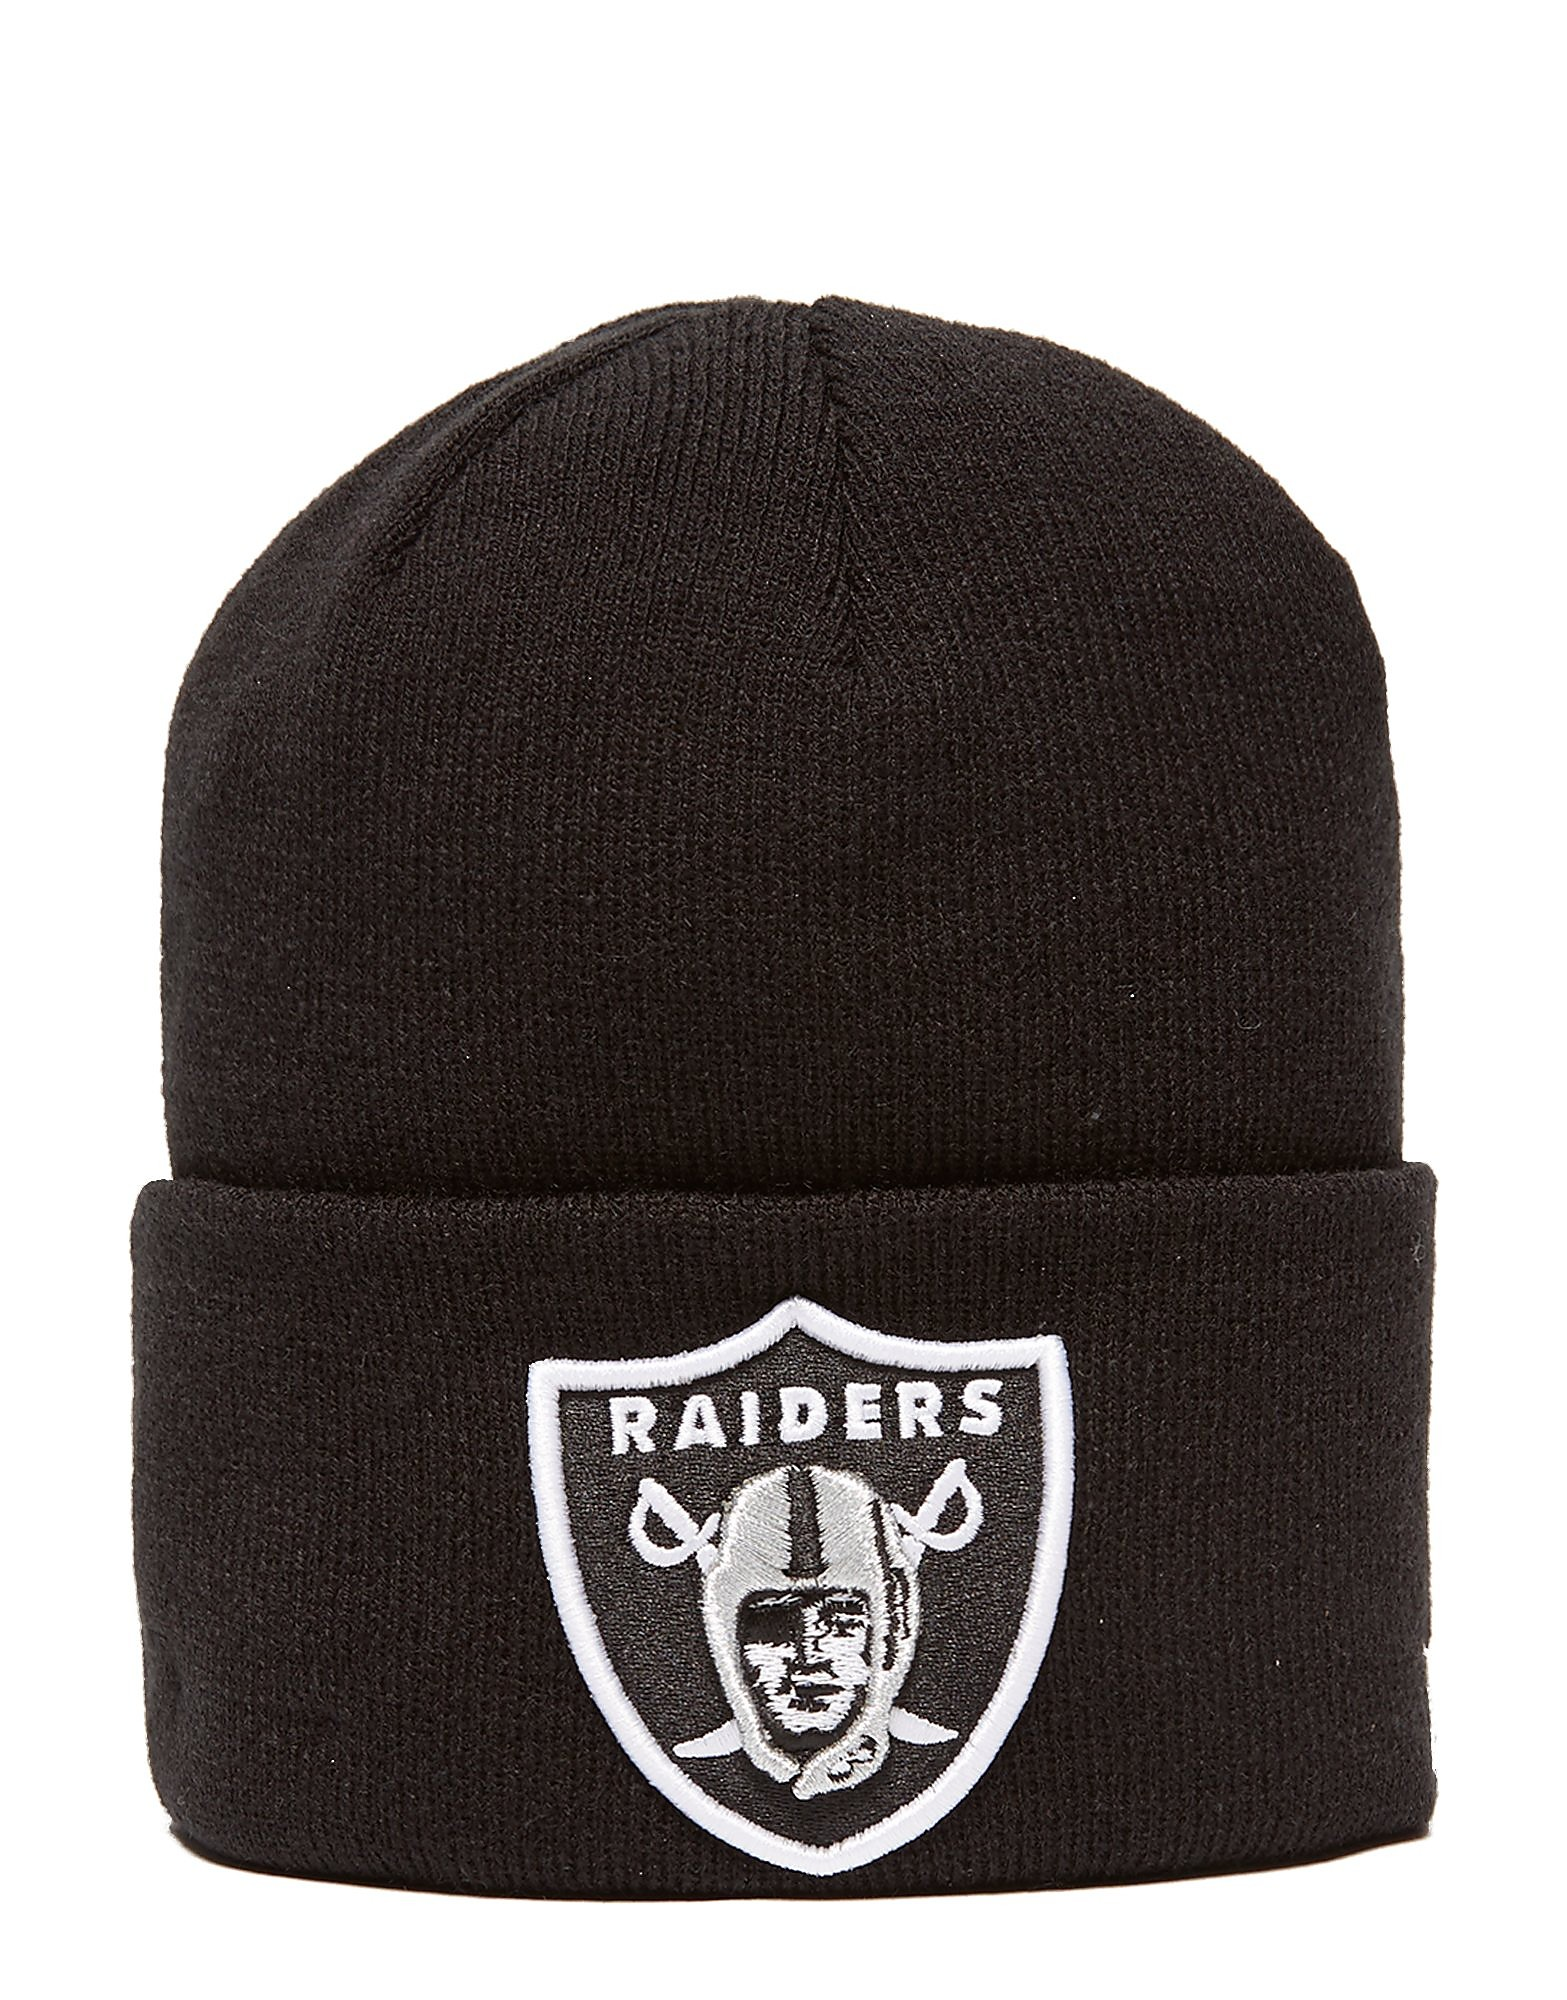 New Era Raiders Over Cappellino di Lana